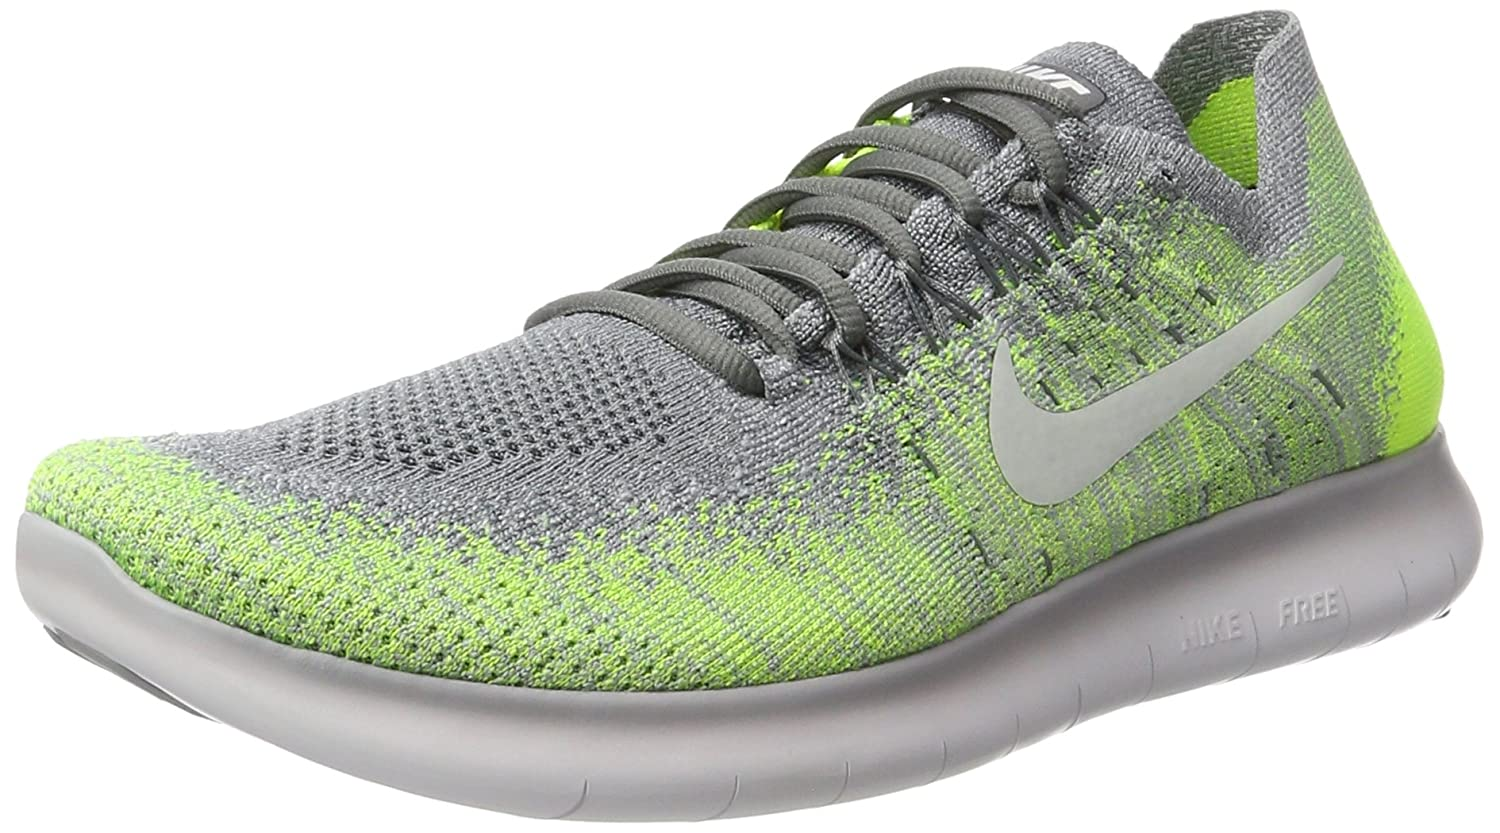 Mens NIKE 'FREE RN FLYKNIT' 880843 004 Running Shoes SIZE 9